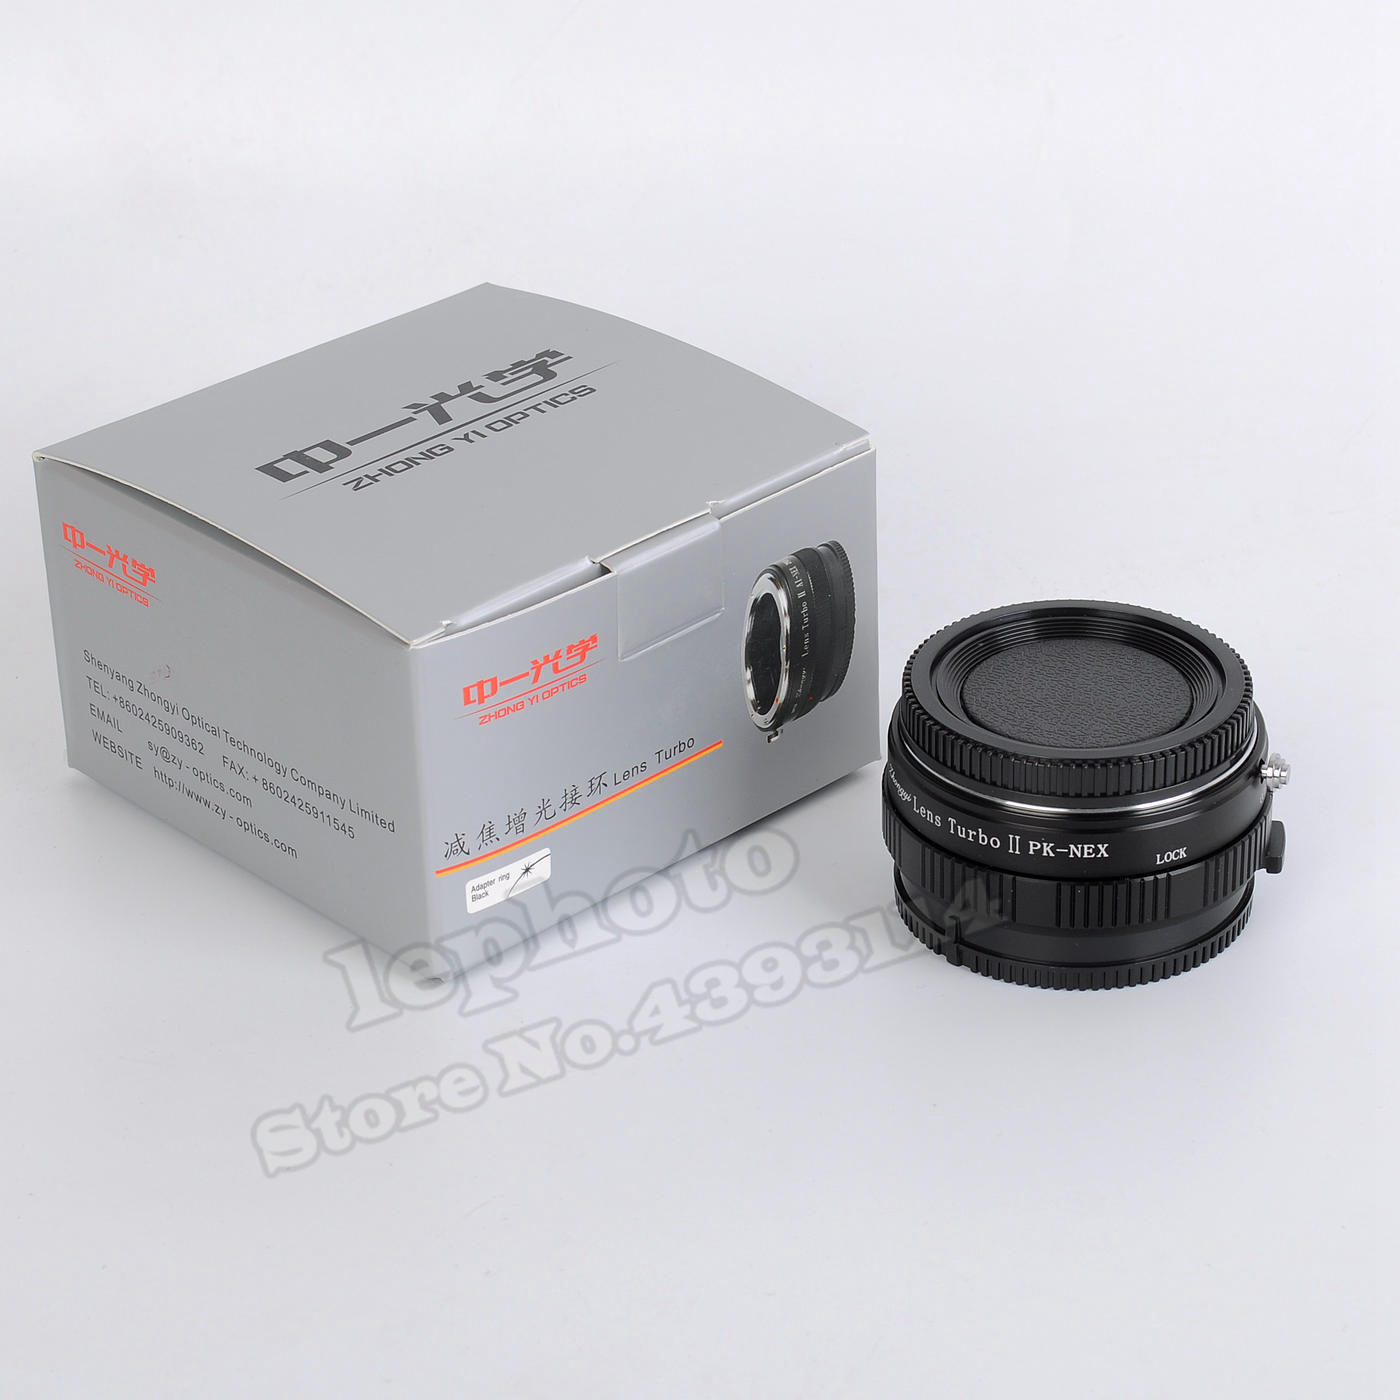 Mitakon Zhongyi Lens Turbo II Focal Reducer Booster Adapter for Pentax K PK Mount Lens to